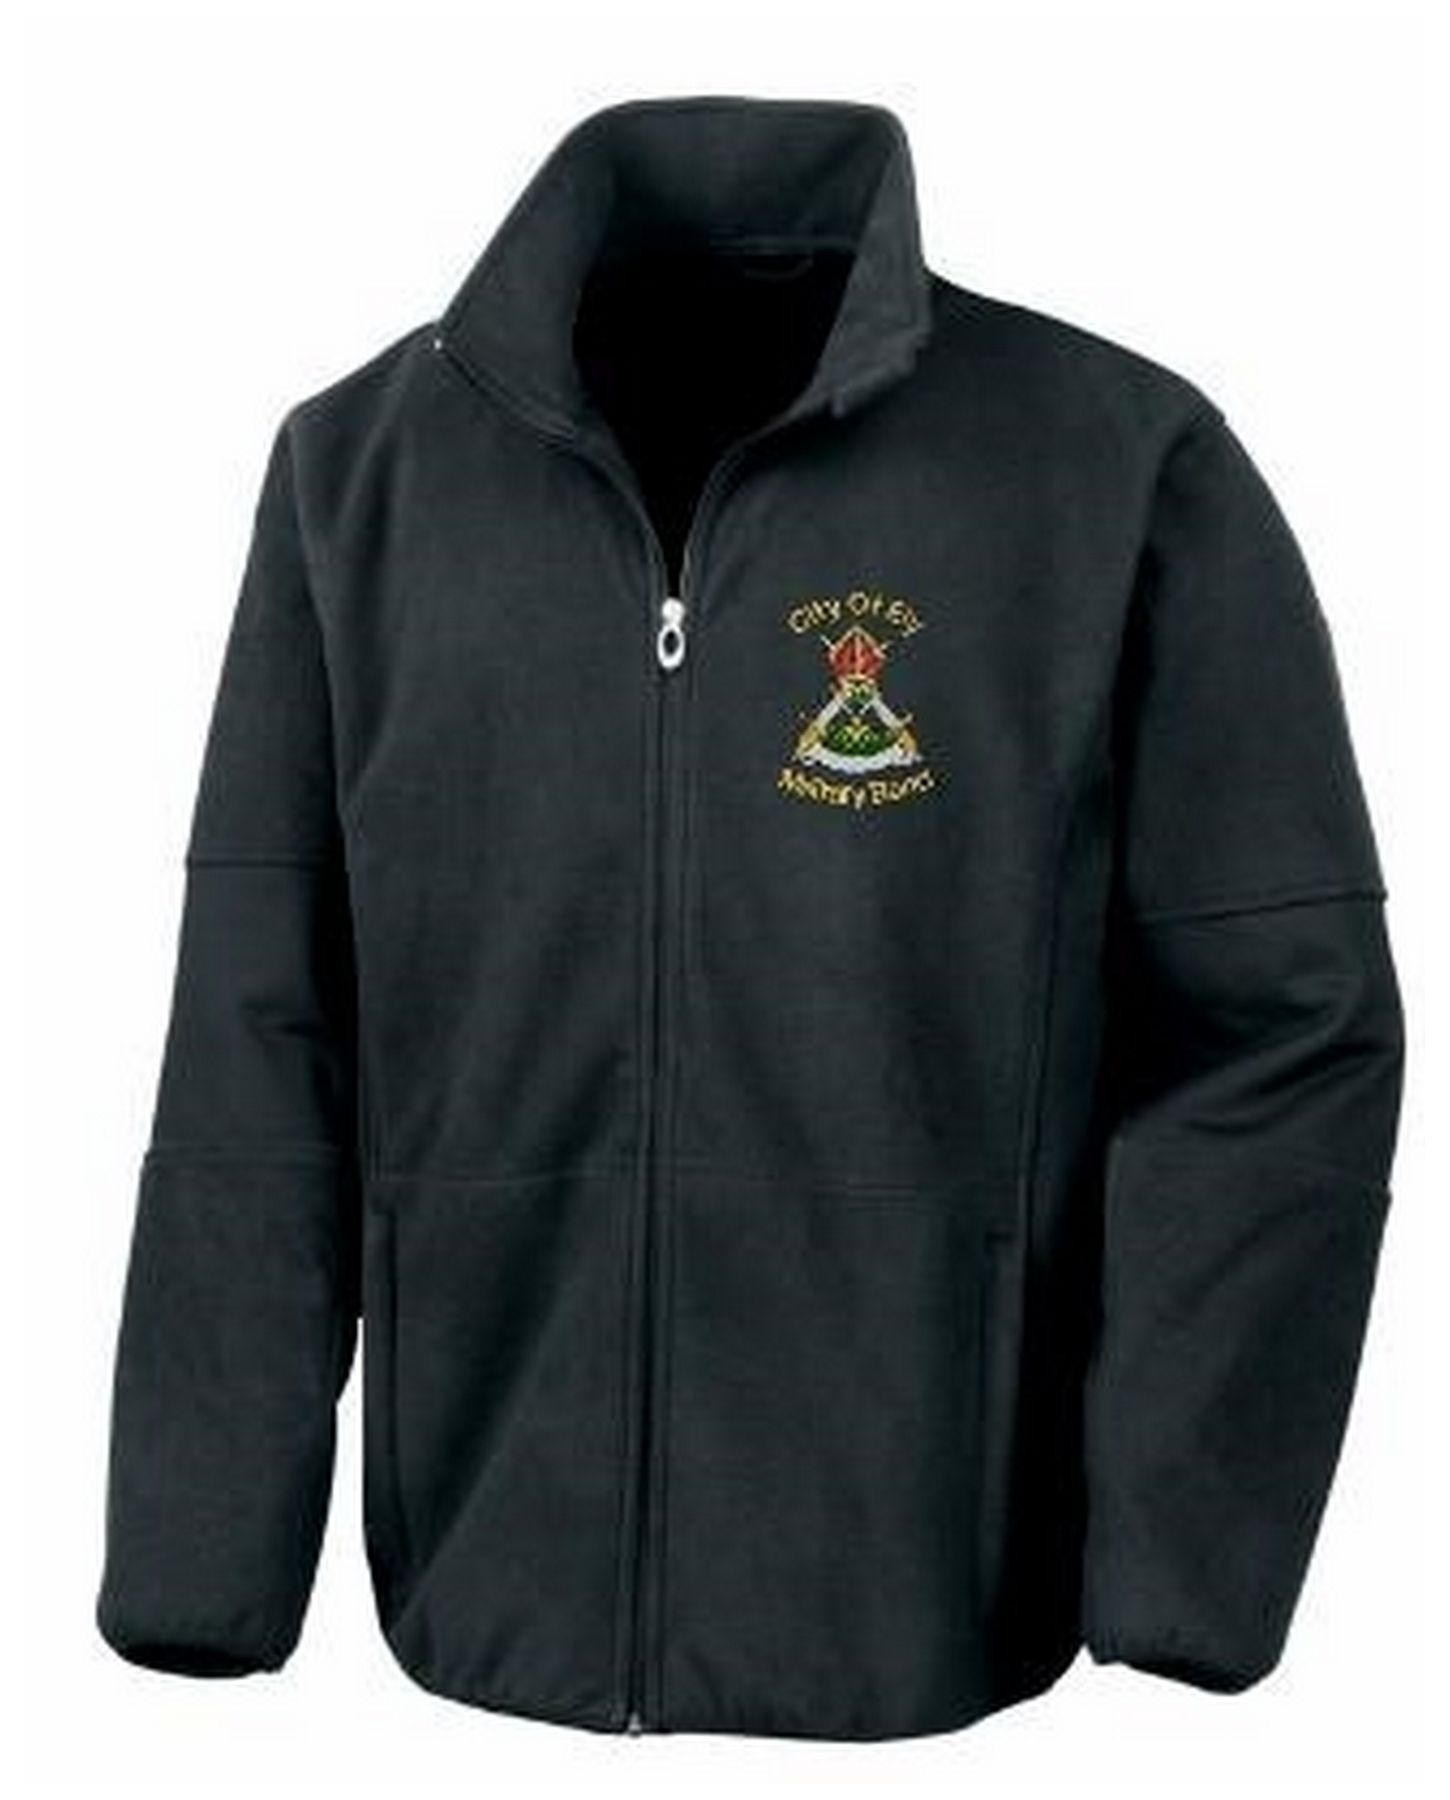 Ely Military Band – Fleece Unisex